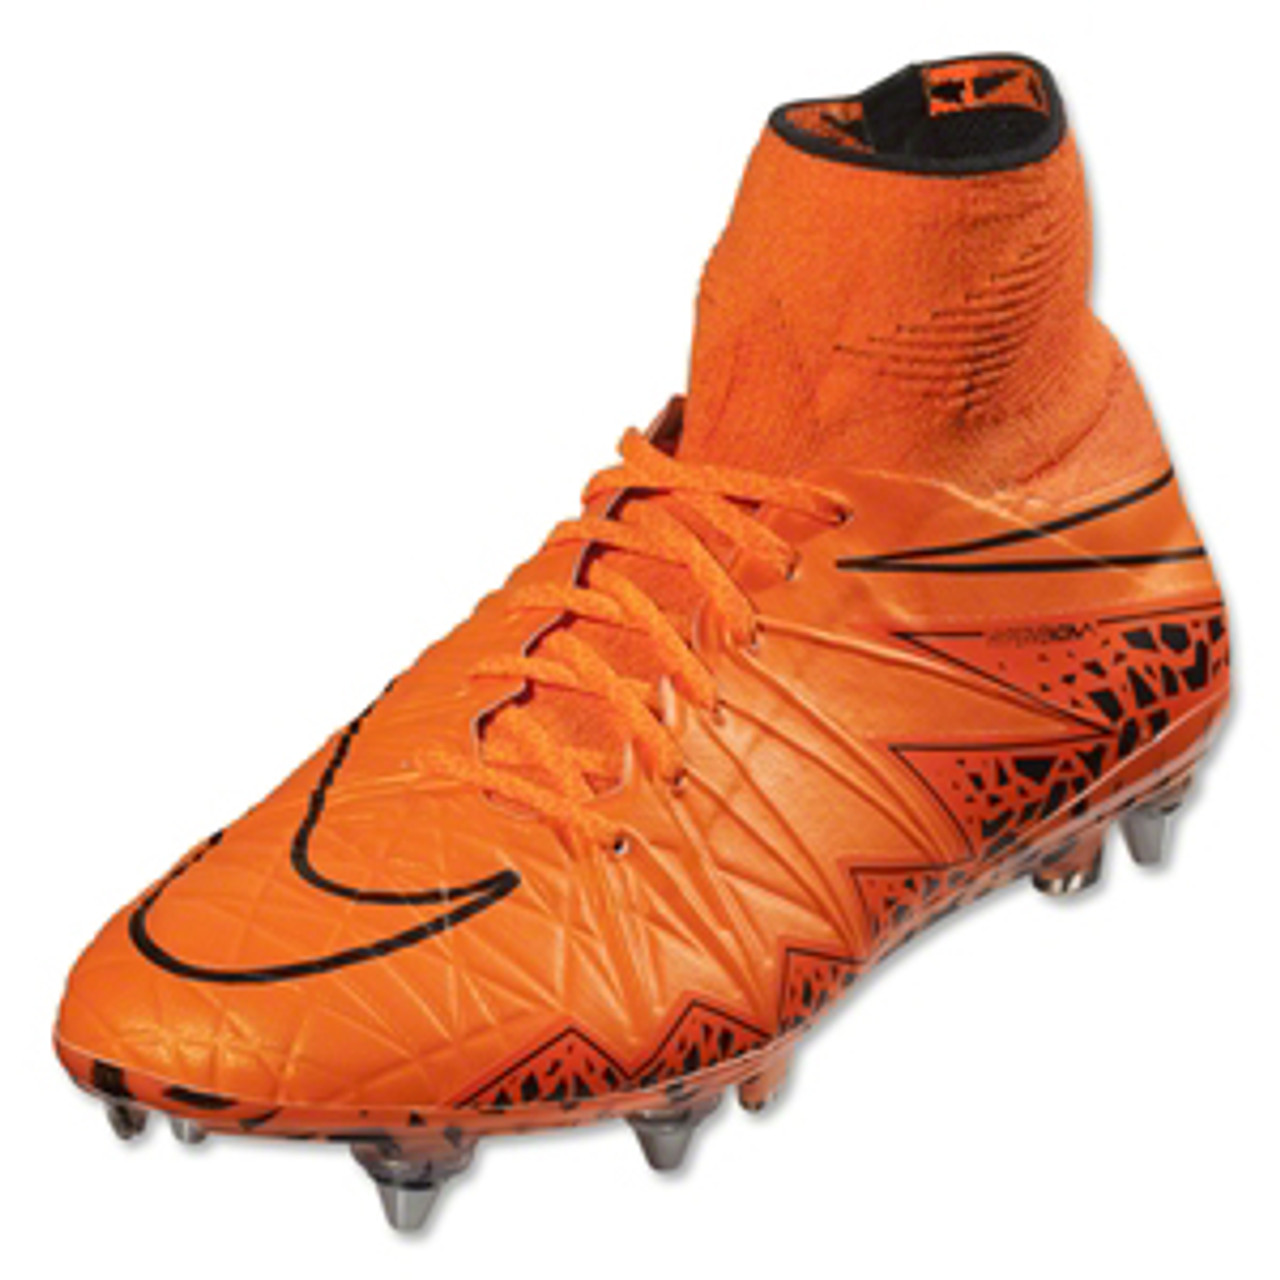 cheaper a11e2 f3c24 NIKE HYPERVENOM PHANTOM II SG-PRO soft ground soccer shoes